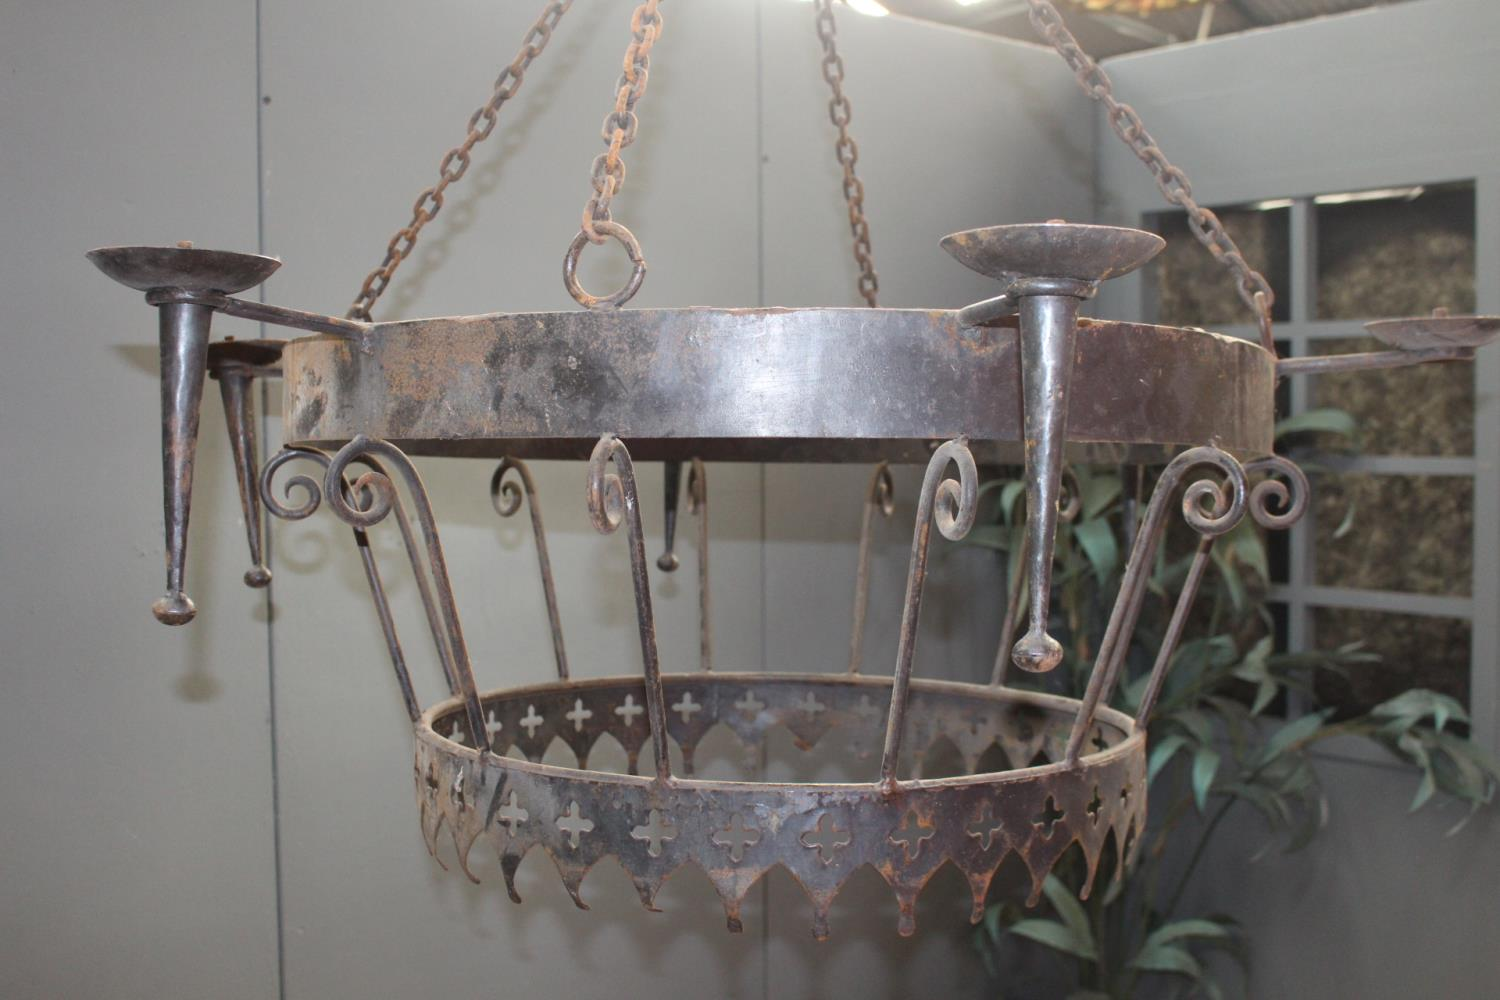 Good quality wrought iron hanging chandelier in the Medieval style {90 cm H x 118 cm Dia.}.